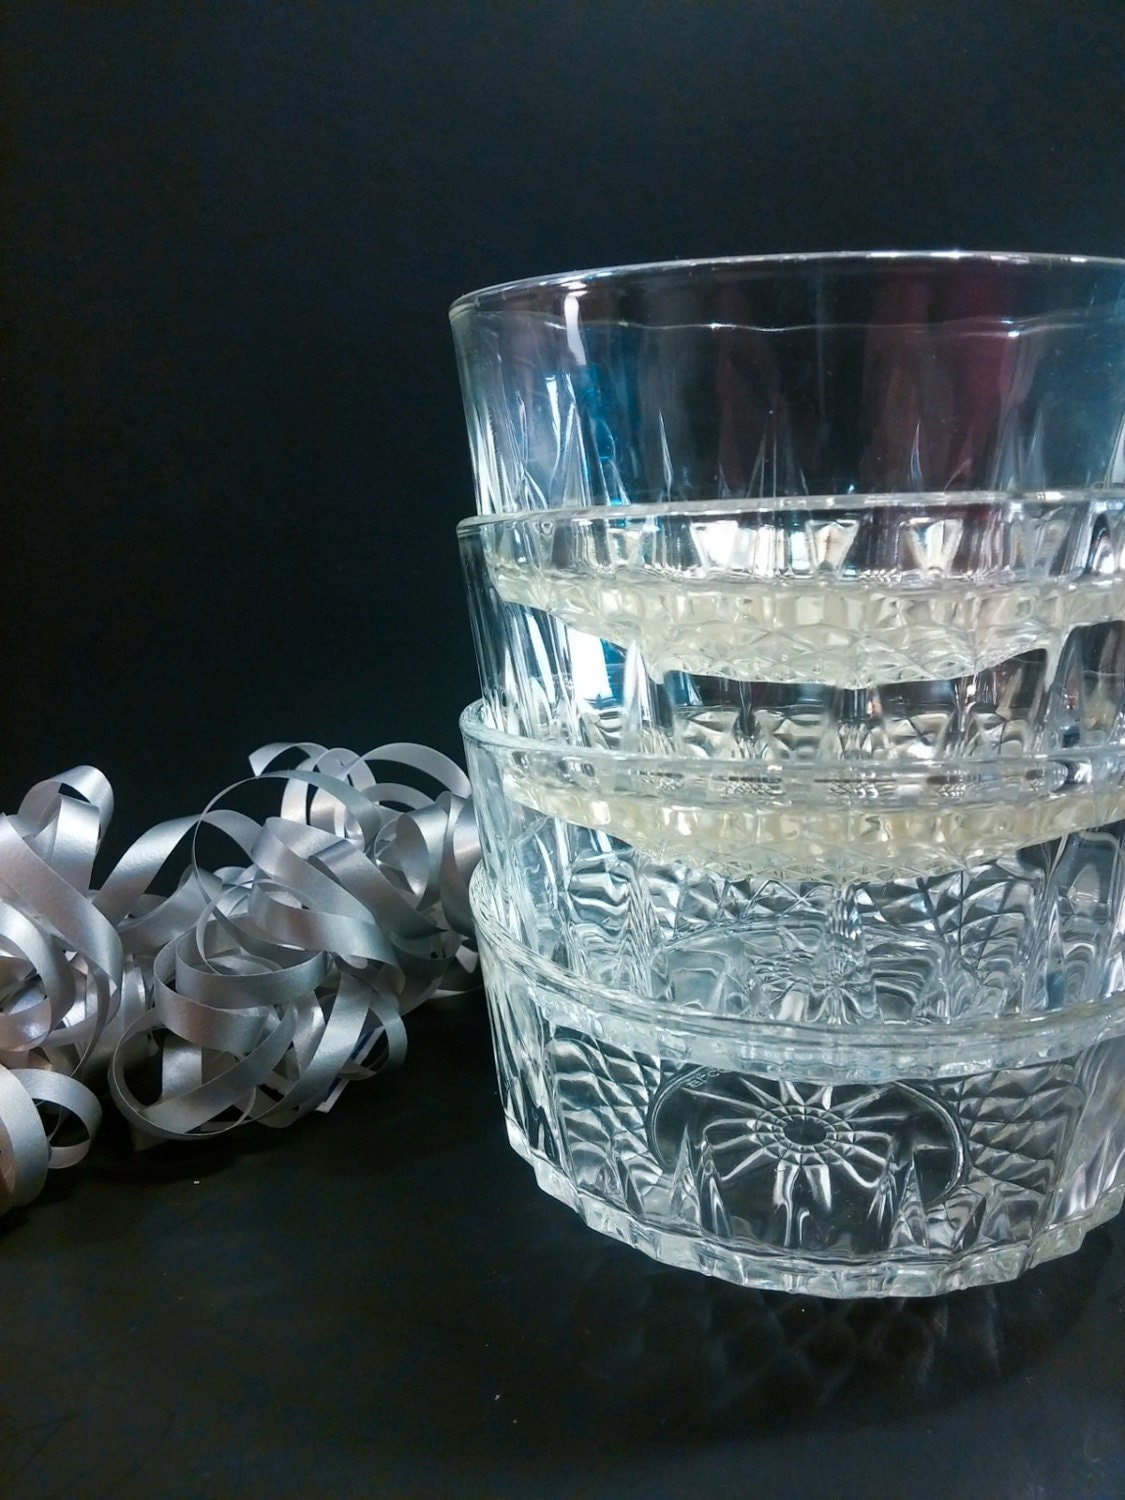 Arcoroc france diamant starburst bowls set of 4 clear glass - Starburst glassware ...